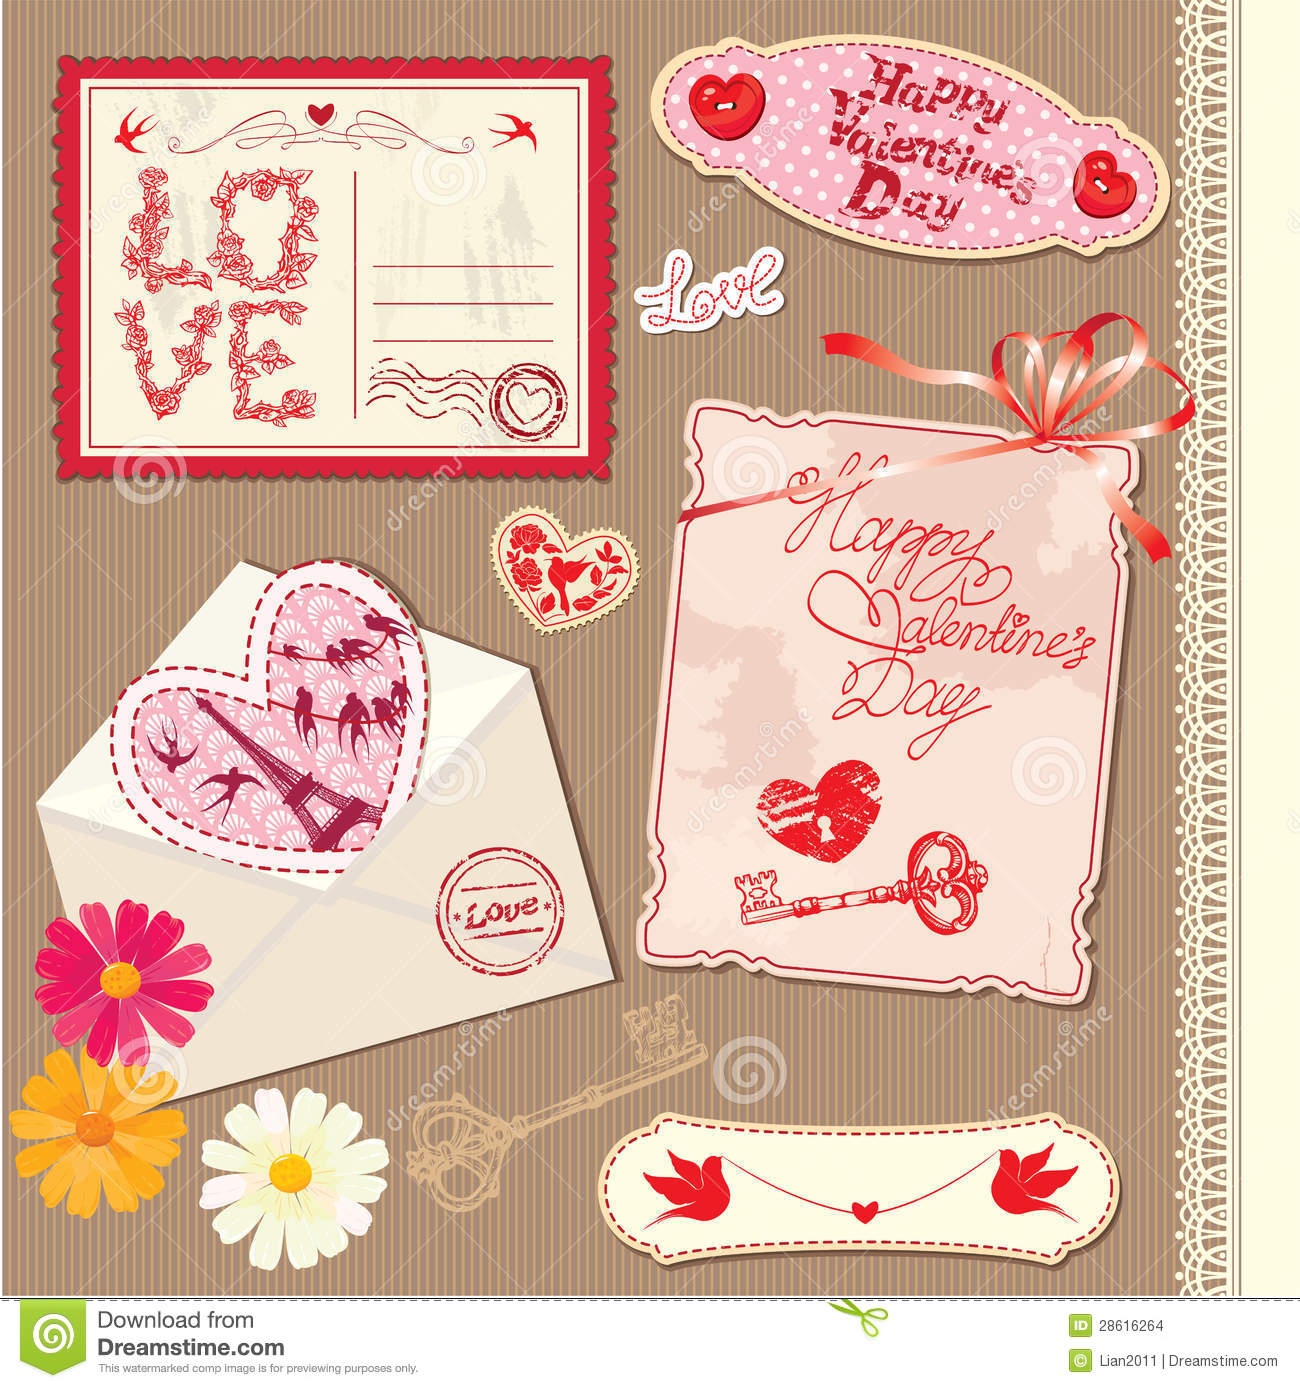 set of vintage valentines day postcards stock vector - image: 28616264, Ideas